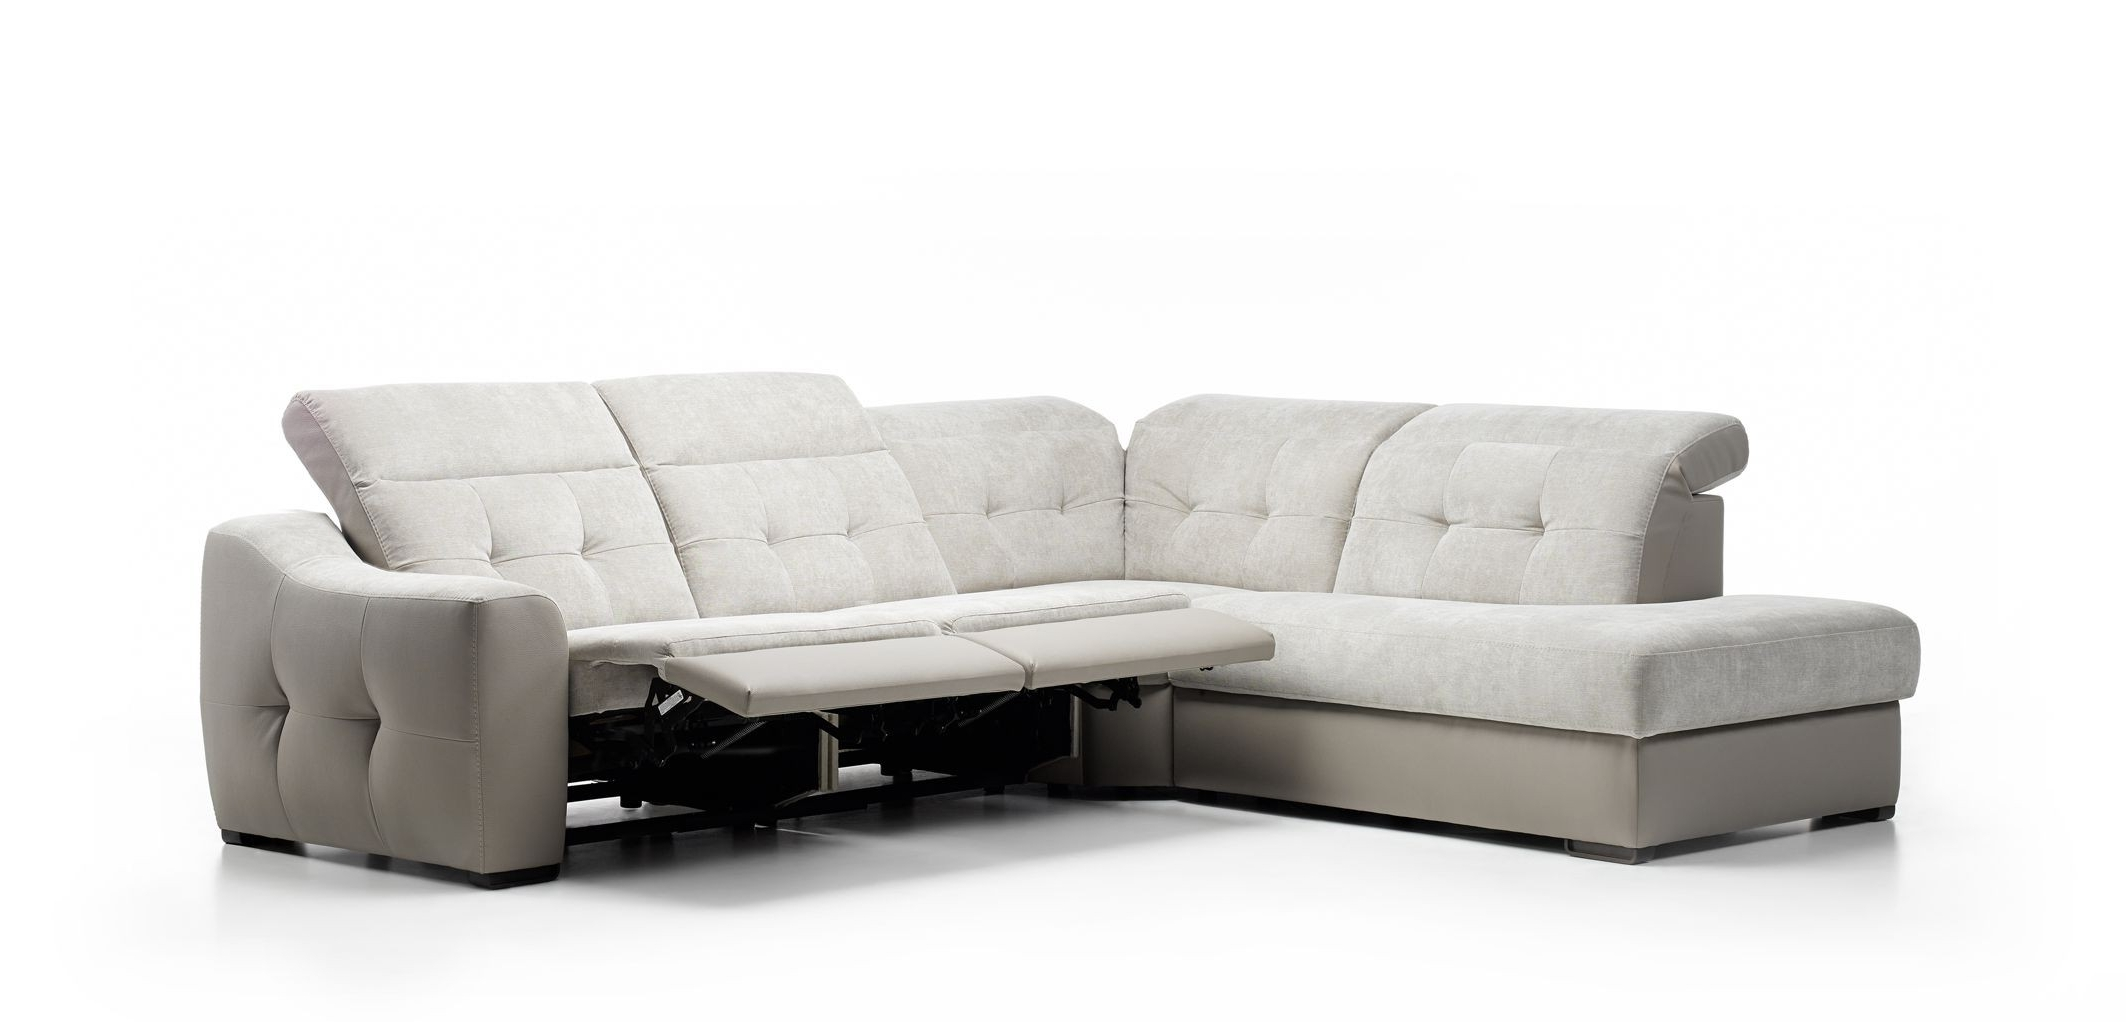 Popular Wall Hugger Loveseat Recliners Loveseat Sectional Apartment Size For Modern Sectional Sofas For Small Spaces (View 18 of 20)